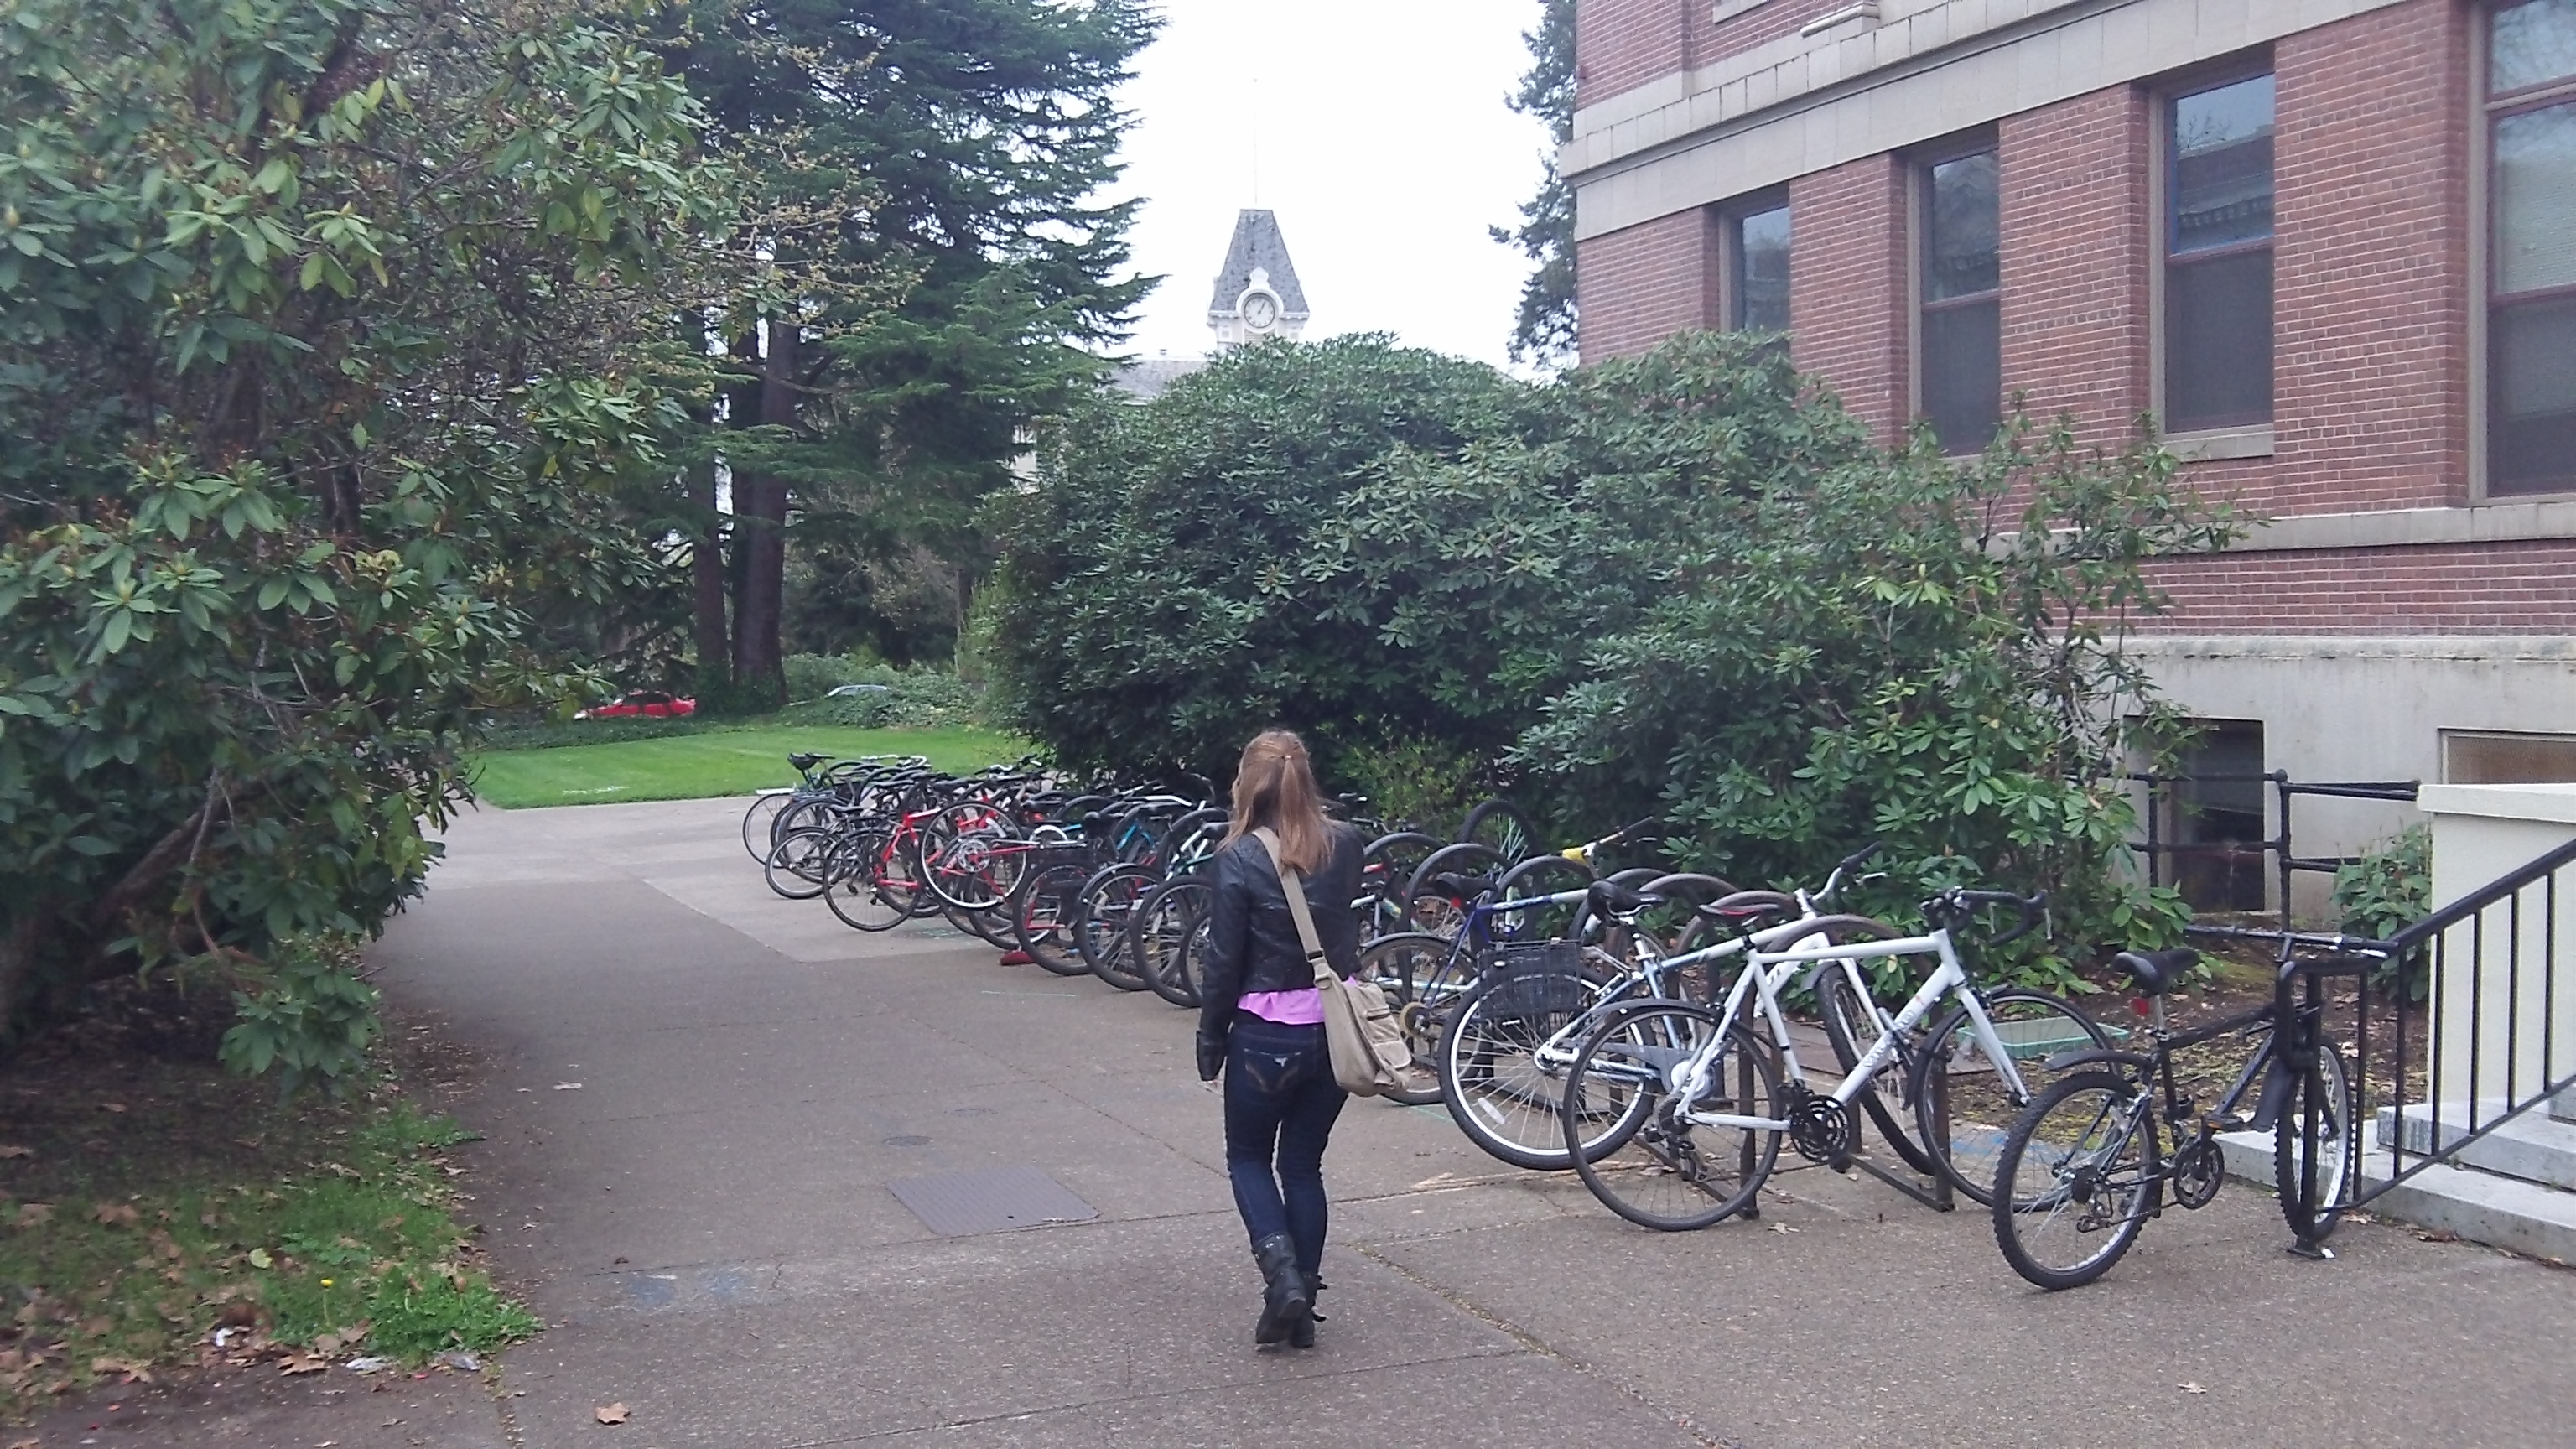 On the campus of Oregon State.